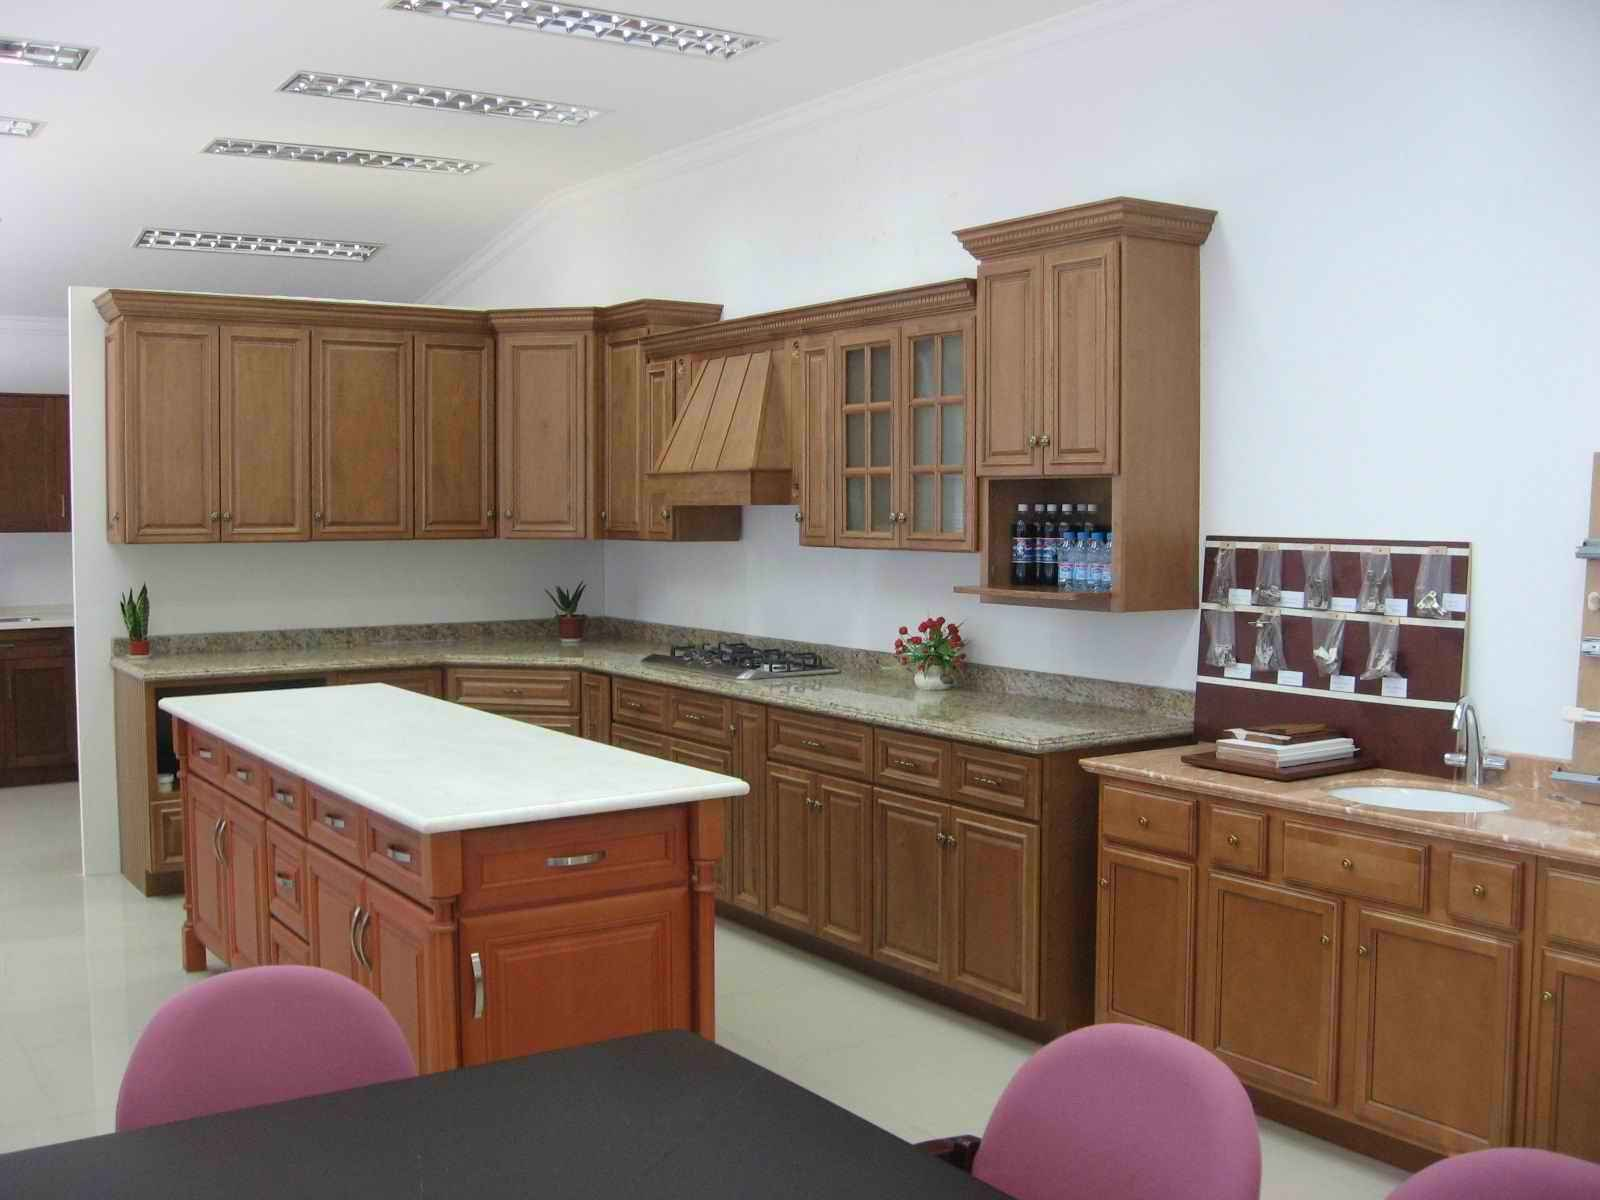 Cheap cabinets for kitchens shopping tips for Kitchen cabinets for cheap